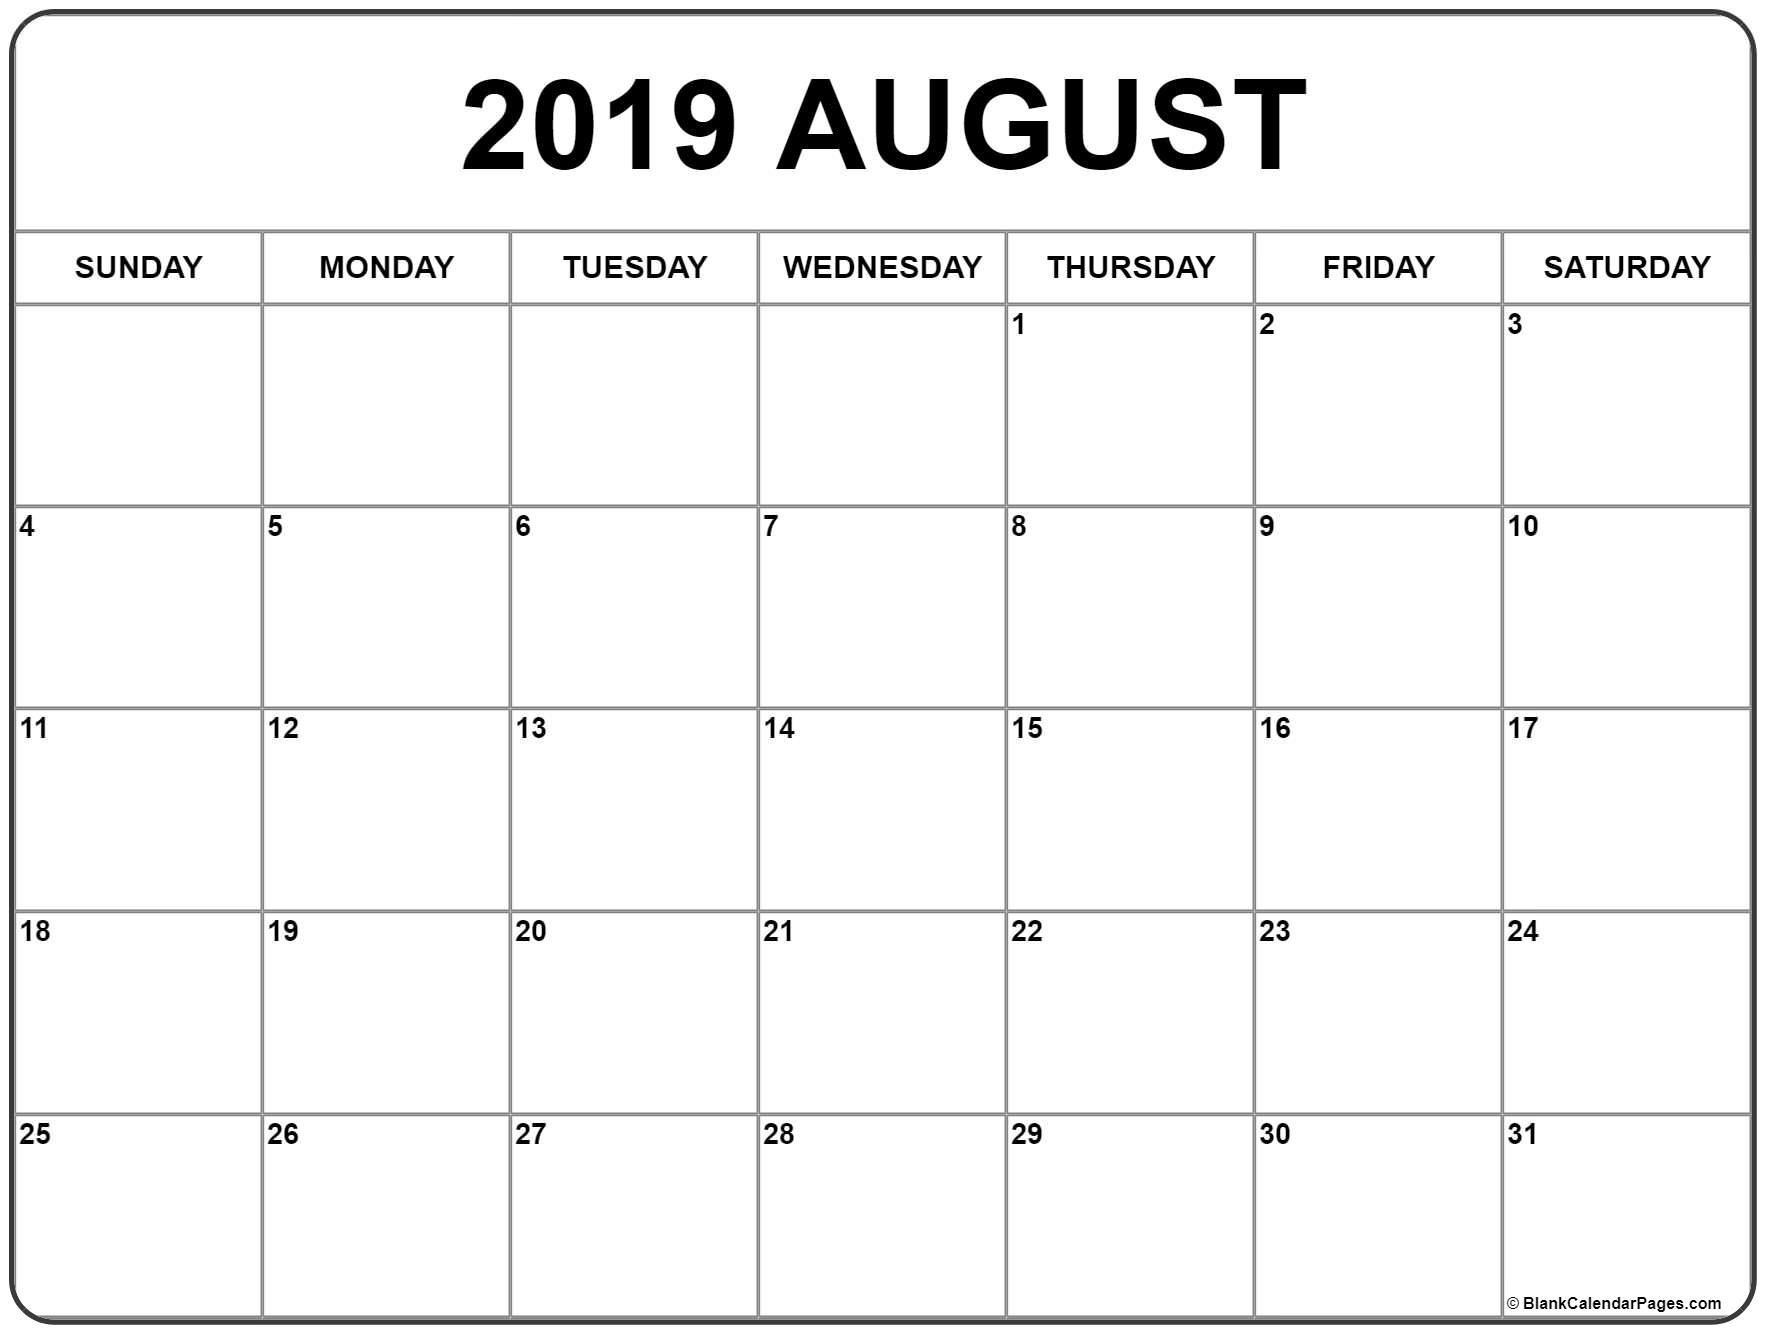 August 2019 Calendar | Free Printable Monthly Calendars